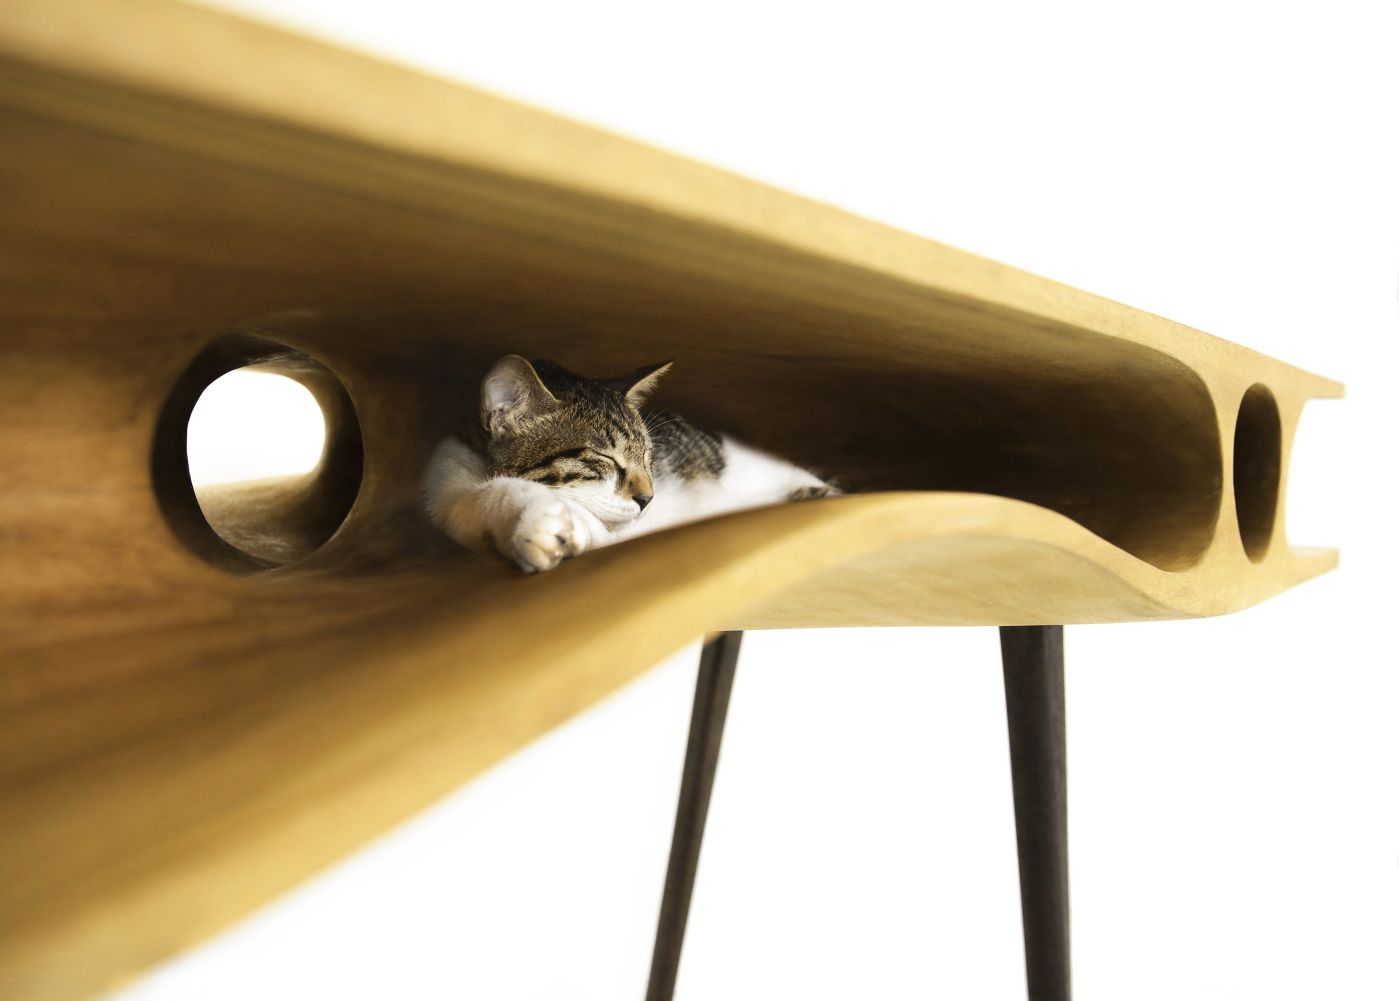 CATable is a locus where the interaction of people and cats occurs. It is a stylish working table for cat ...